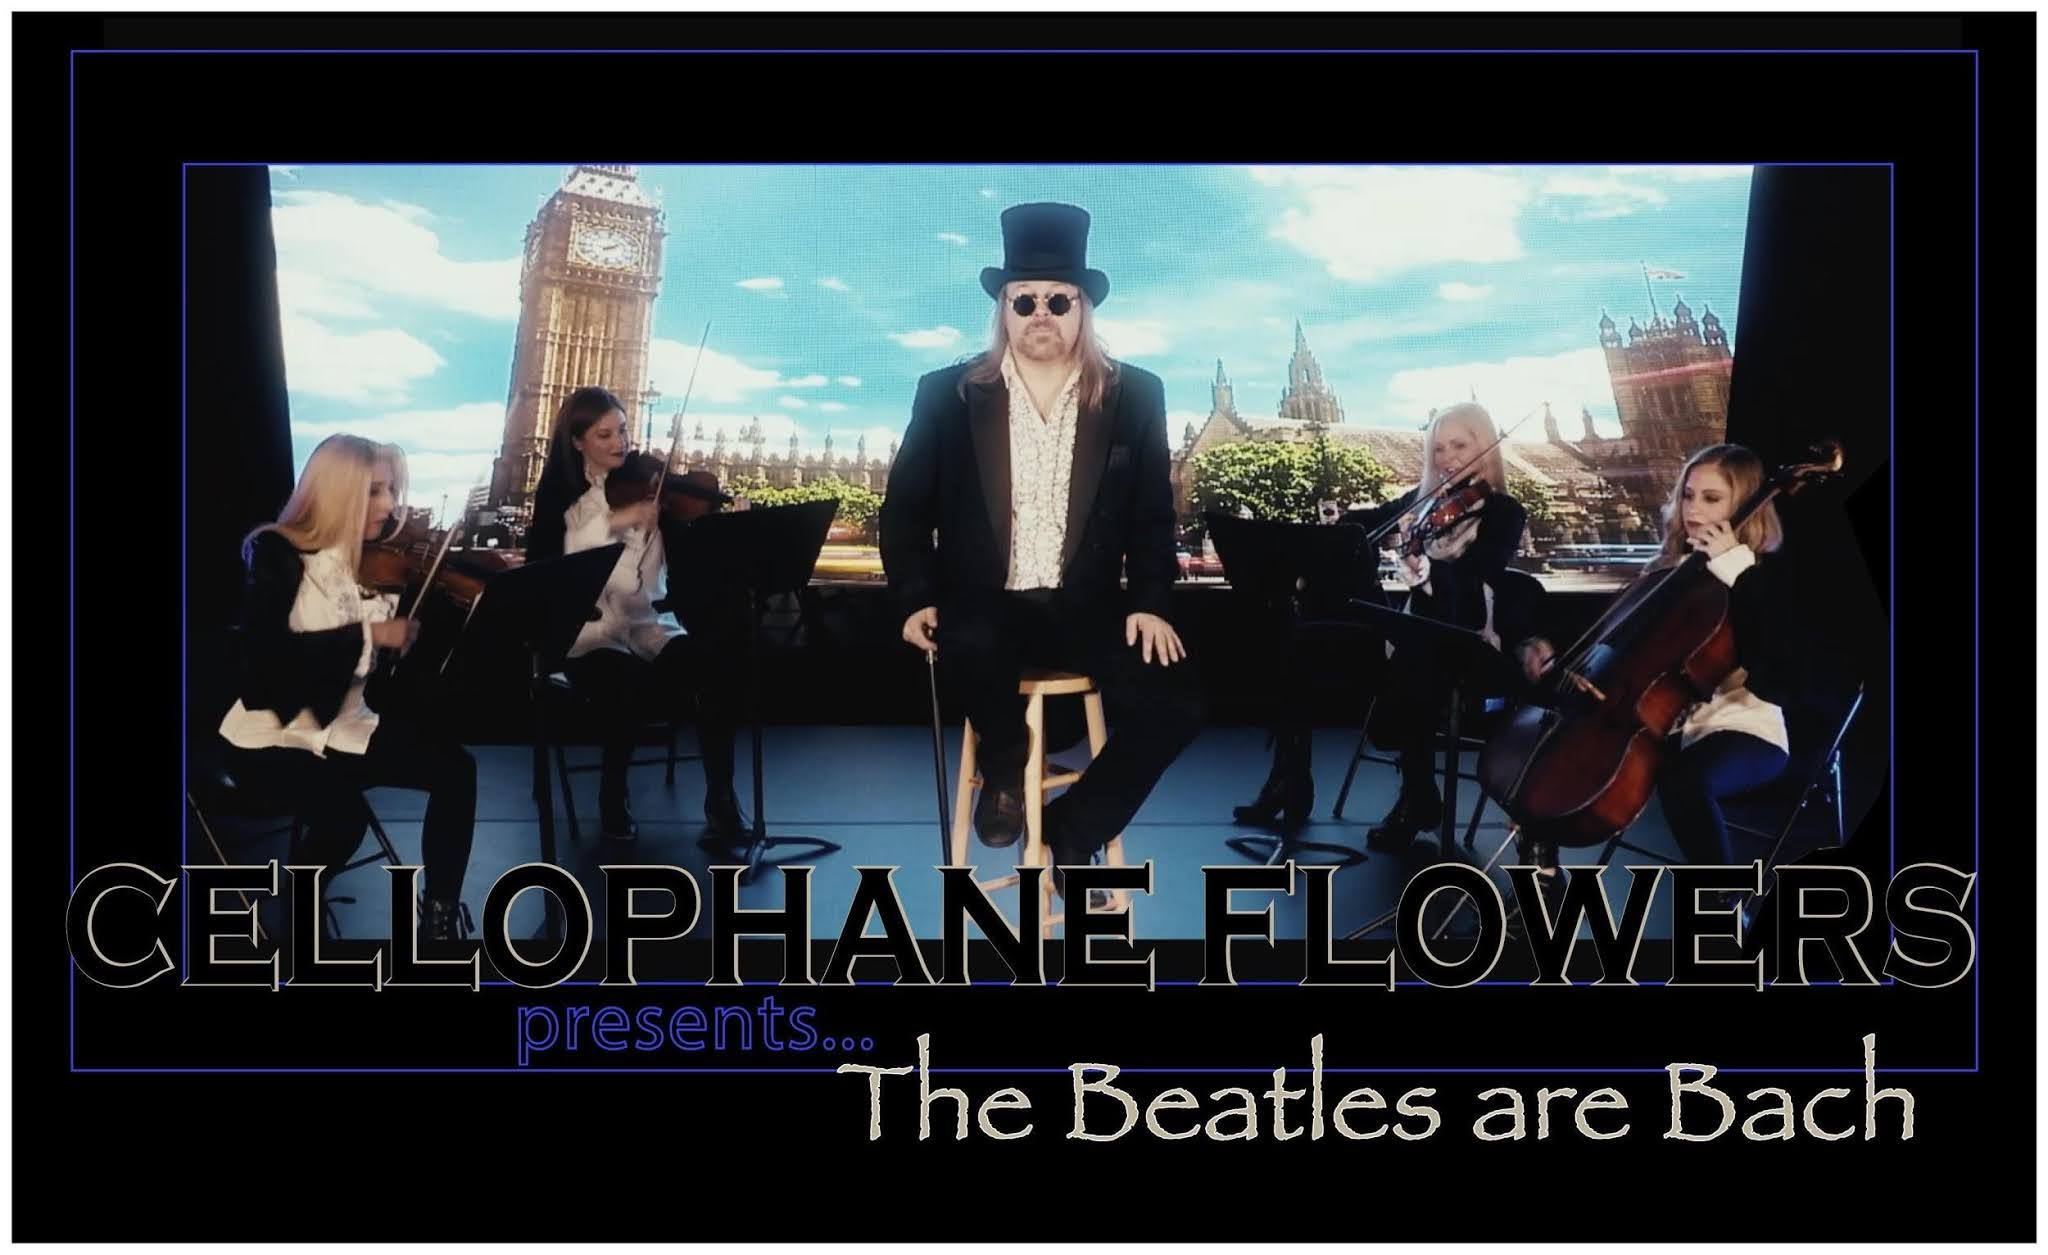 Take a Wistful Walk Down Penny Lane With Jeff Lake & Cellophane Flowers